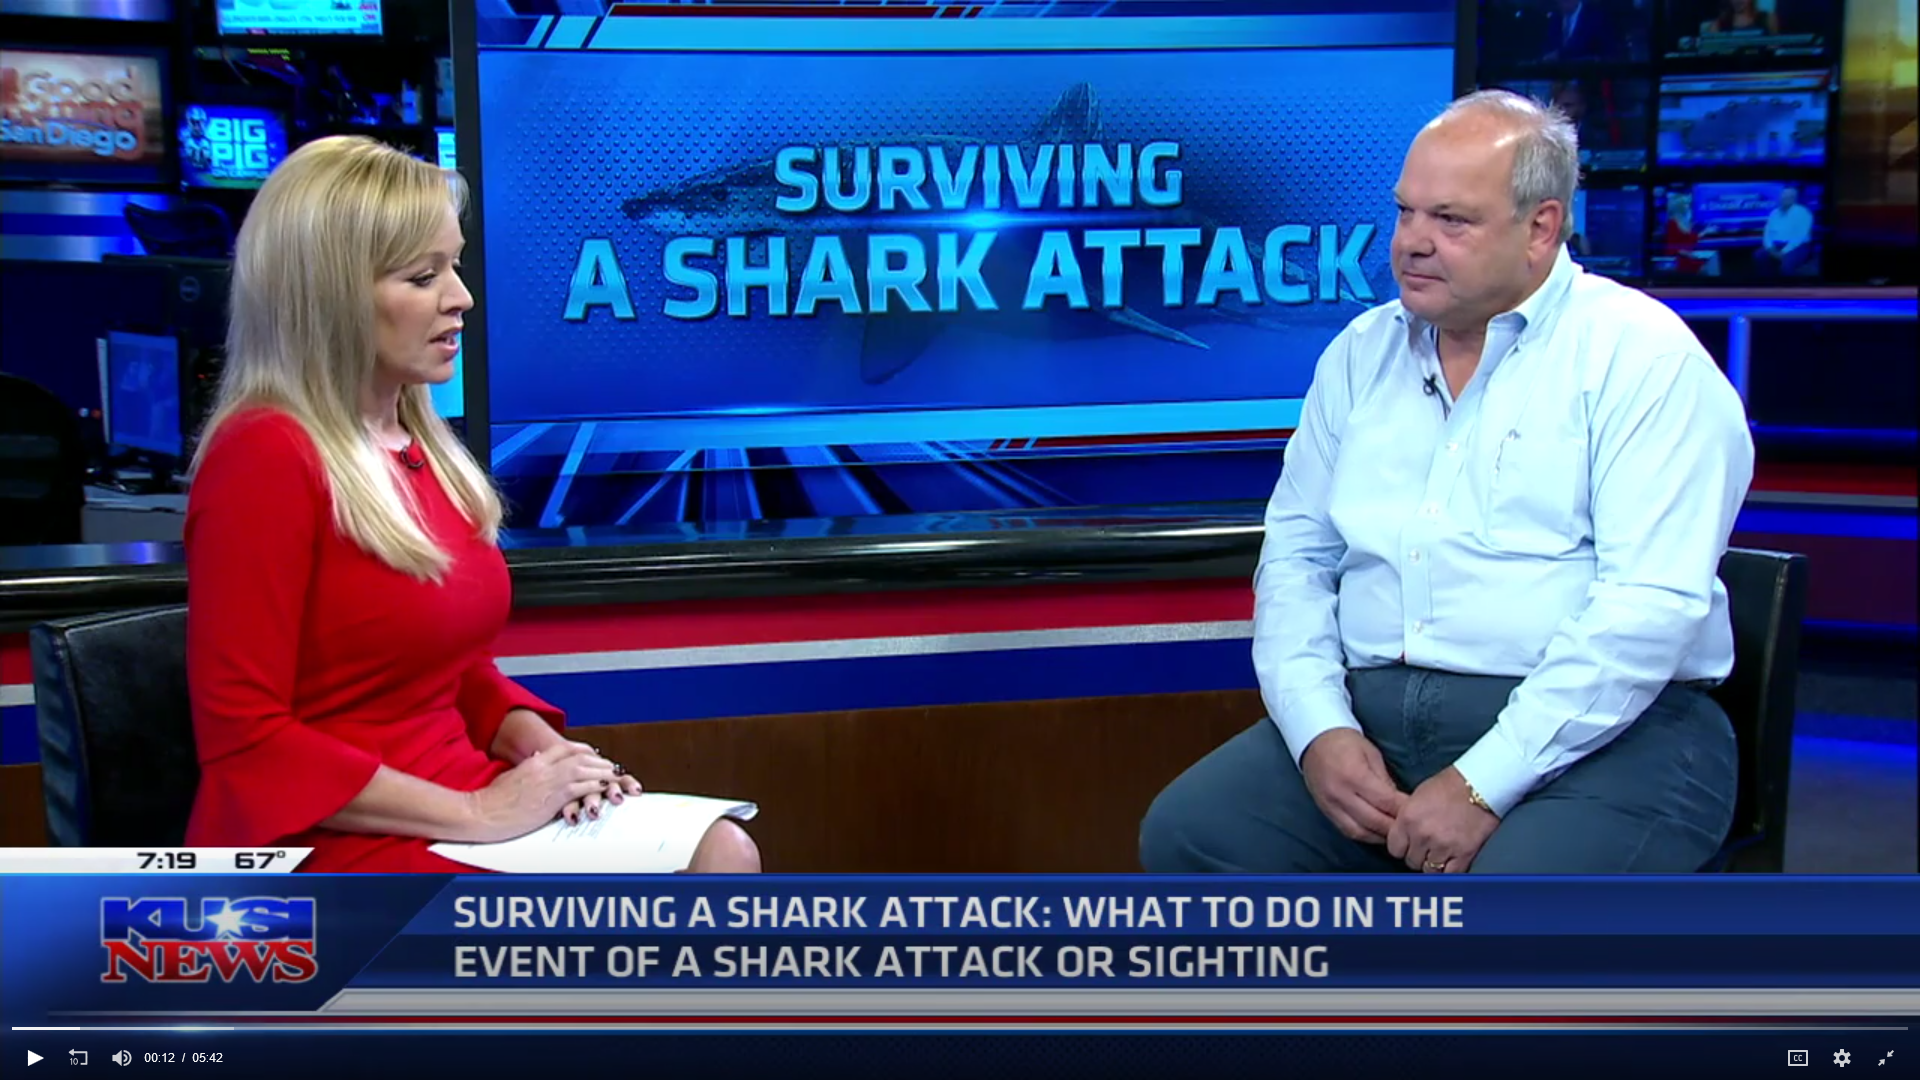 Surviving a Shark Attack